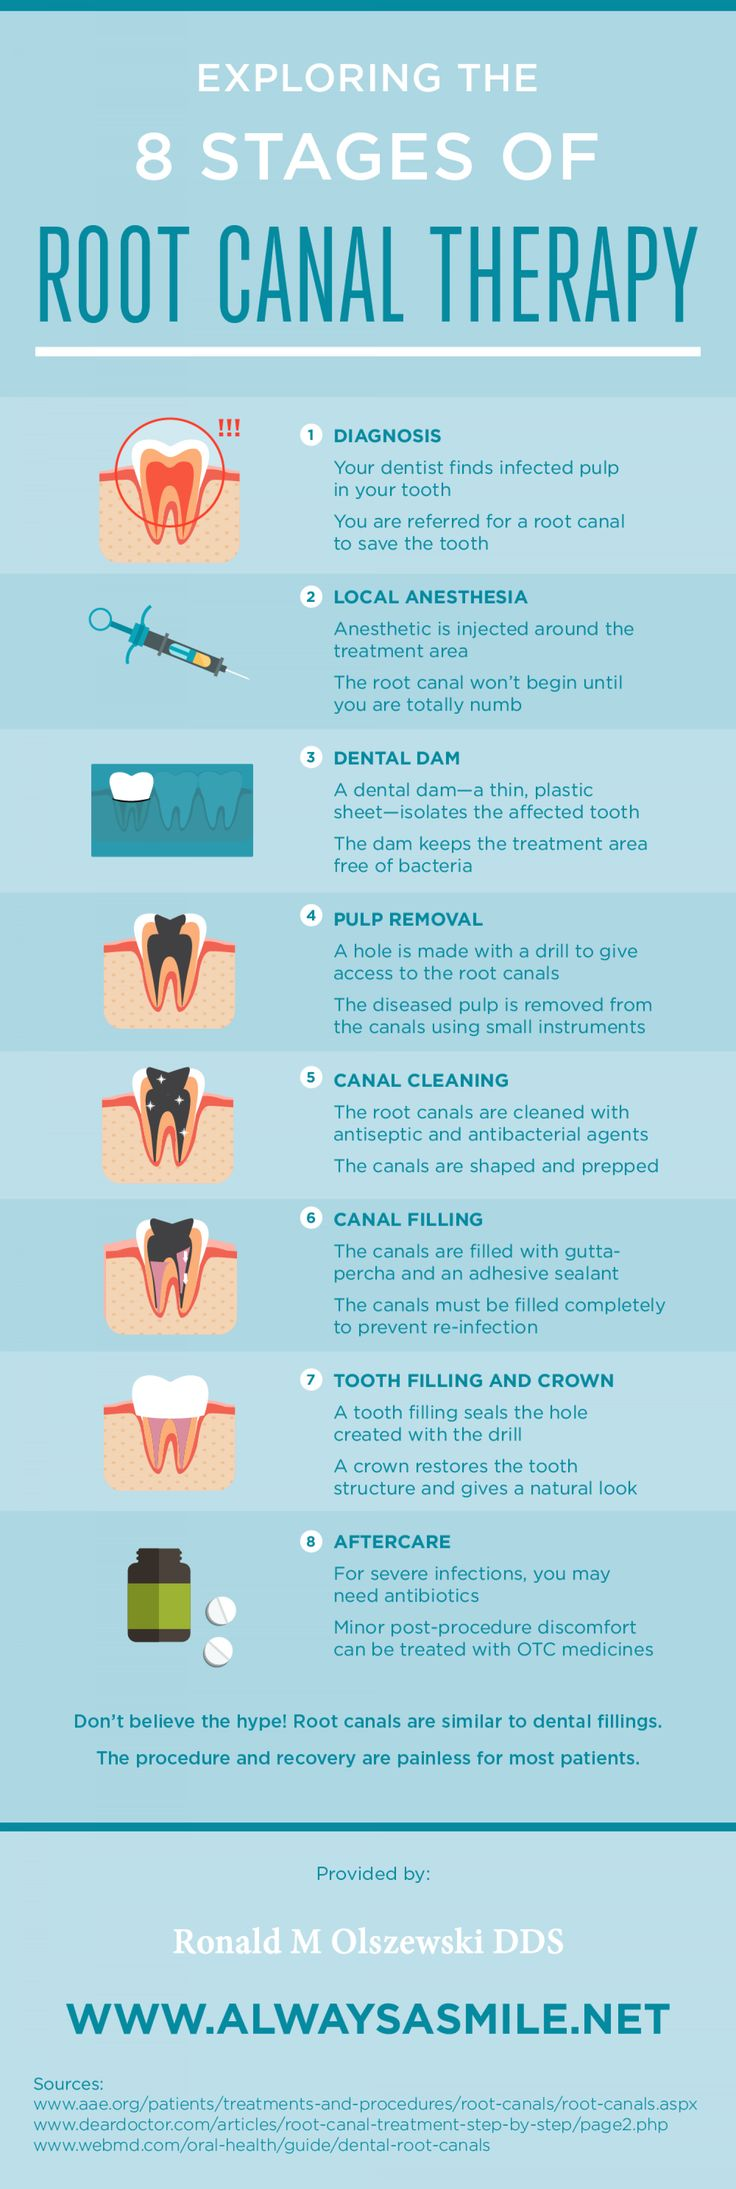 Exploring the 8 Stages of Root Canal Therapy   https://www.healthyfood365.com/exploring-the-8-stages-of-root-canal-therapy/